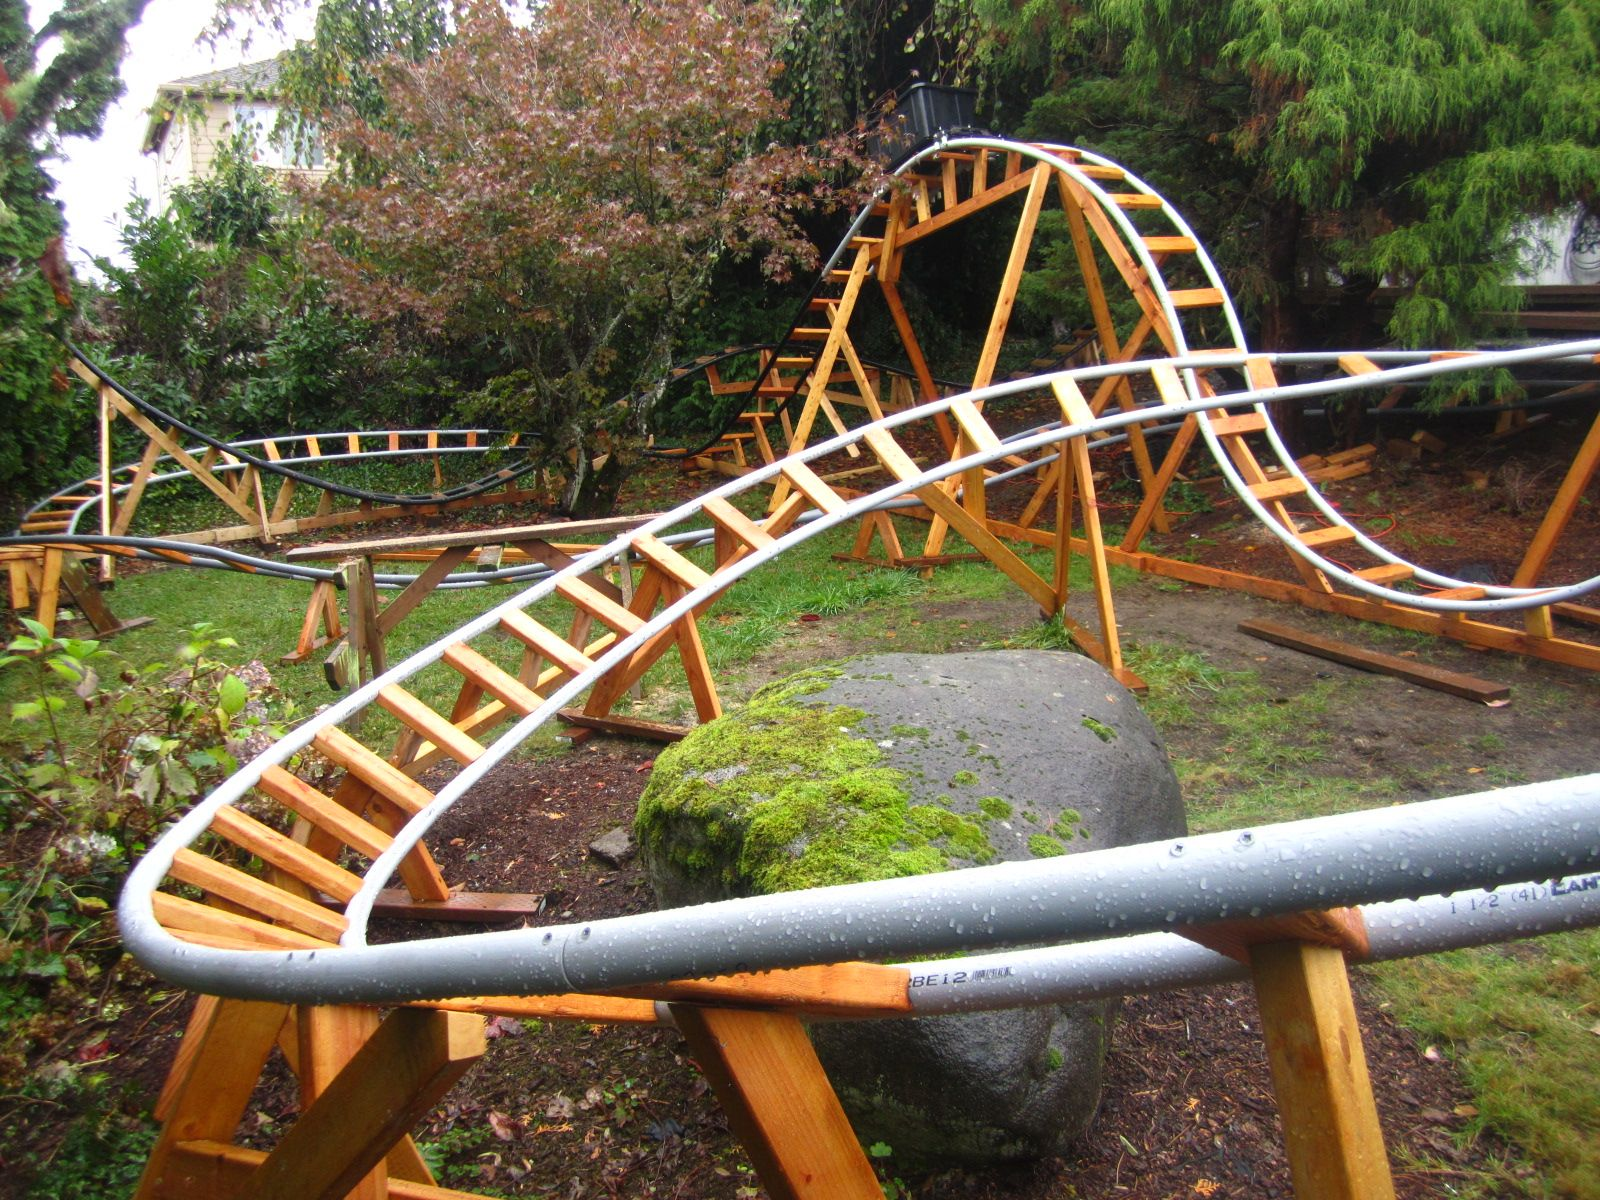 Every Now And Then We Come Across Homemade Roller Coasters Designed By Amateurs And Built In Their Own Back Homemade Roller Coaster Backyard Fun Roller Coaster Diy backyard roller coaster